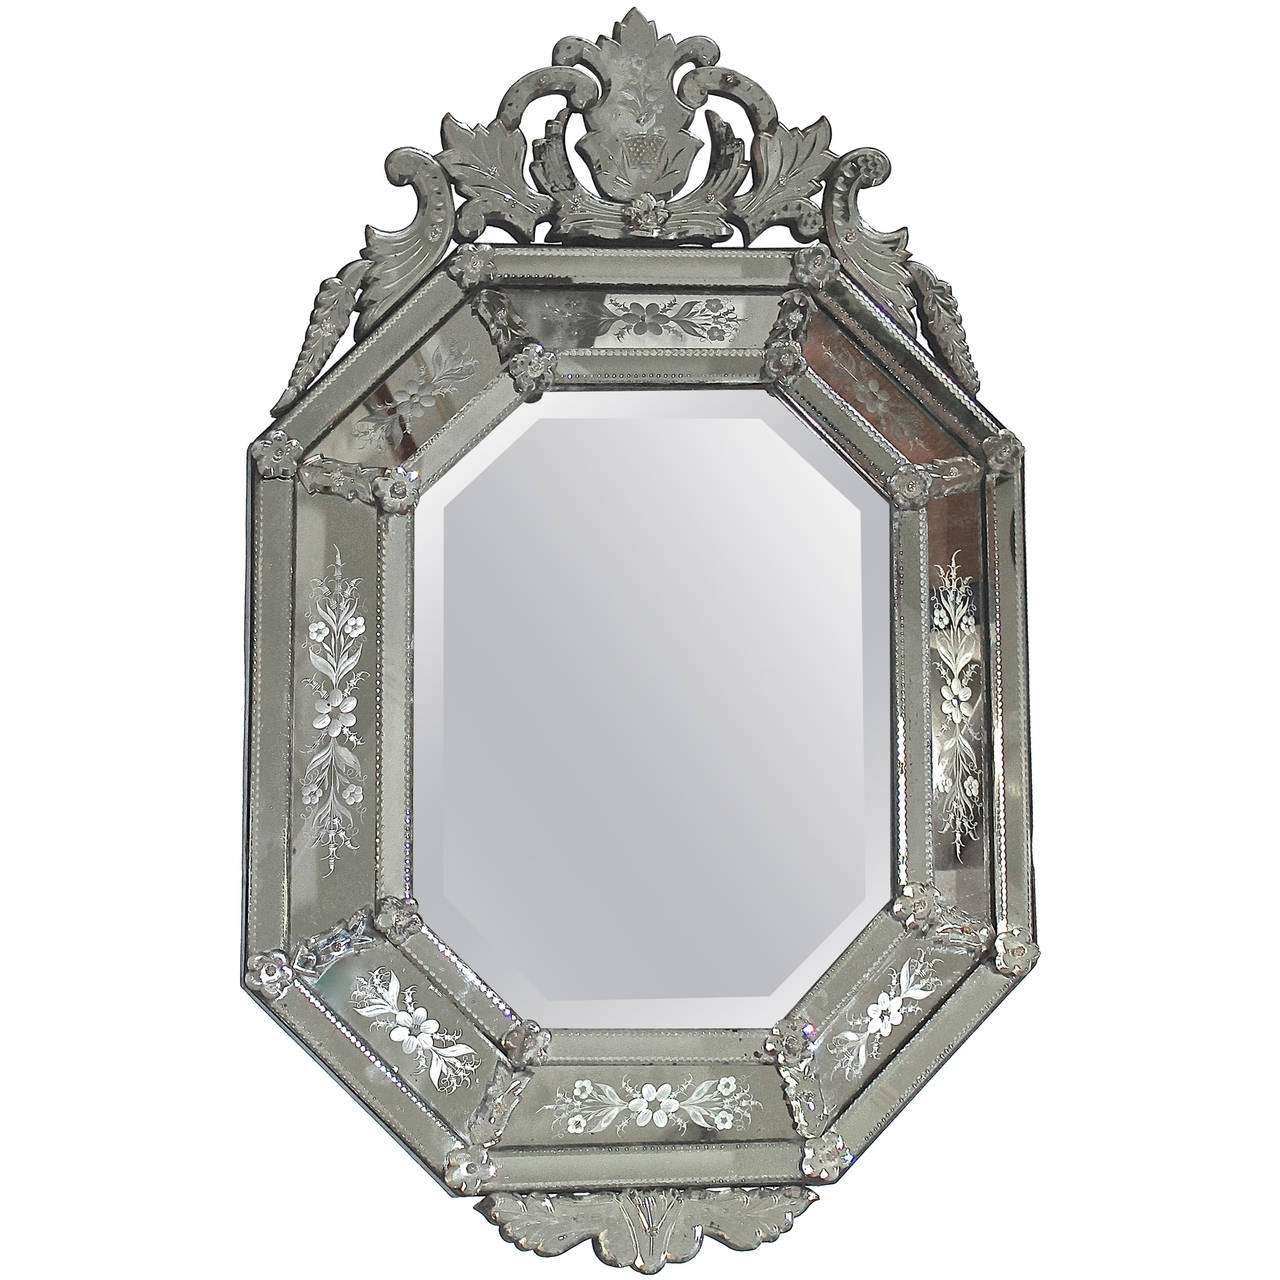 Italian Venetian Etched Glass Wall Mirror For Sale At 1stdibs With Venetian Etched Glass Mirror (Image 12 of 15)